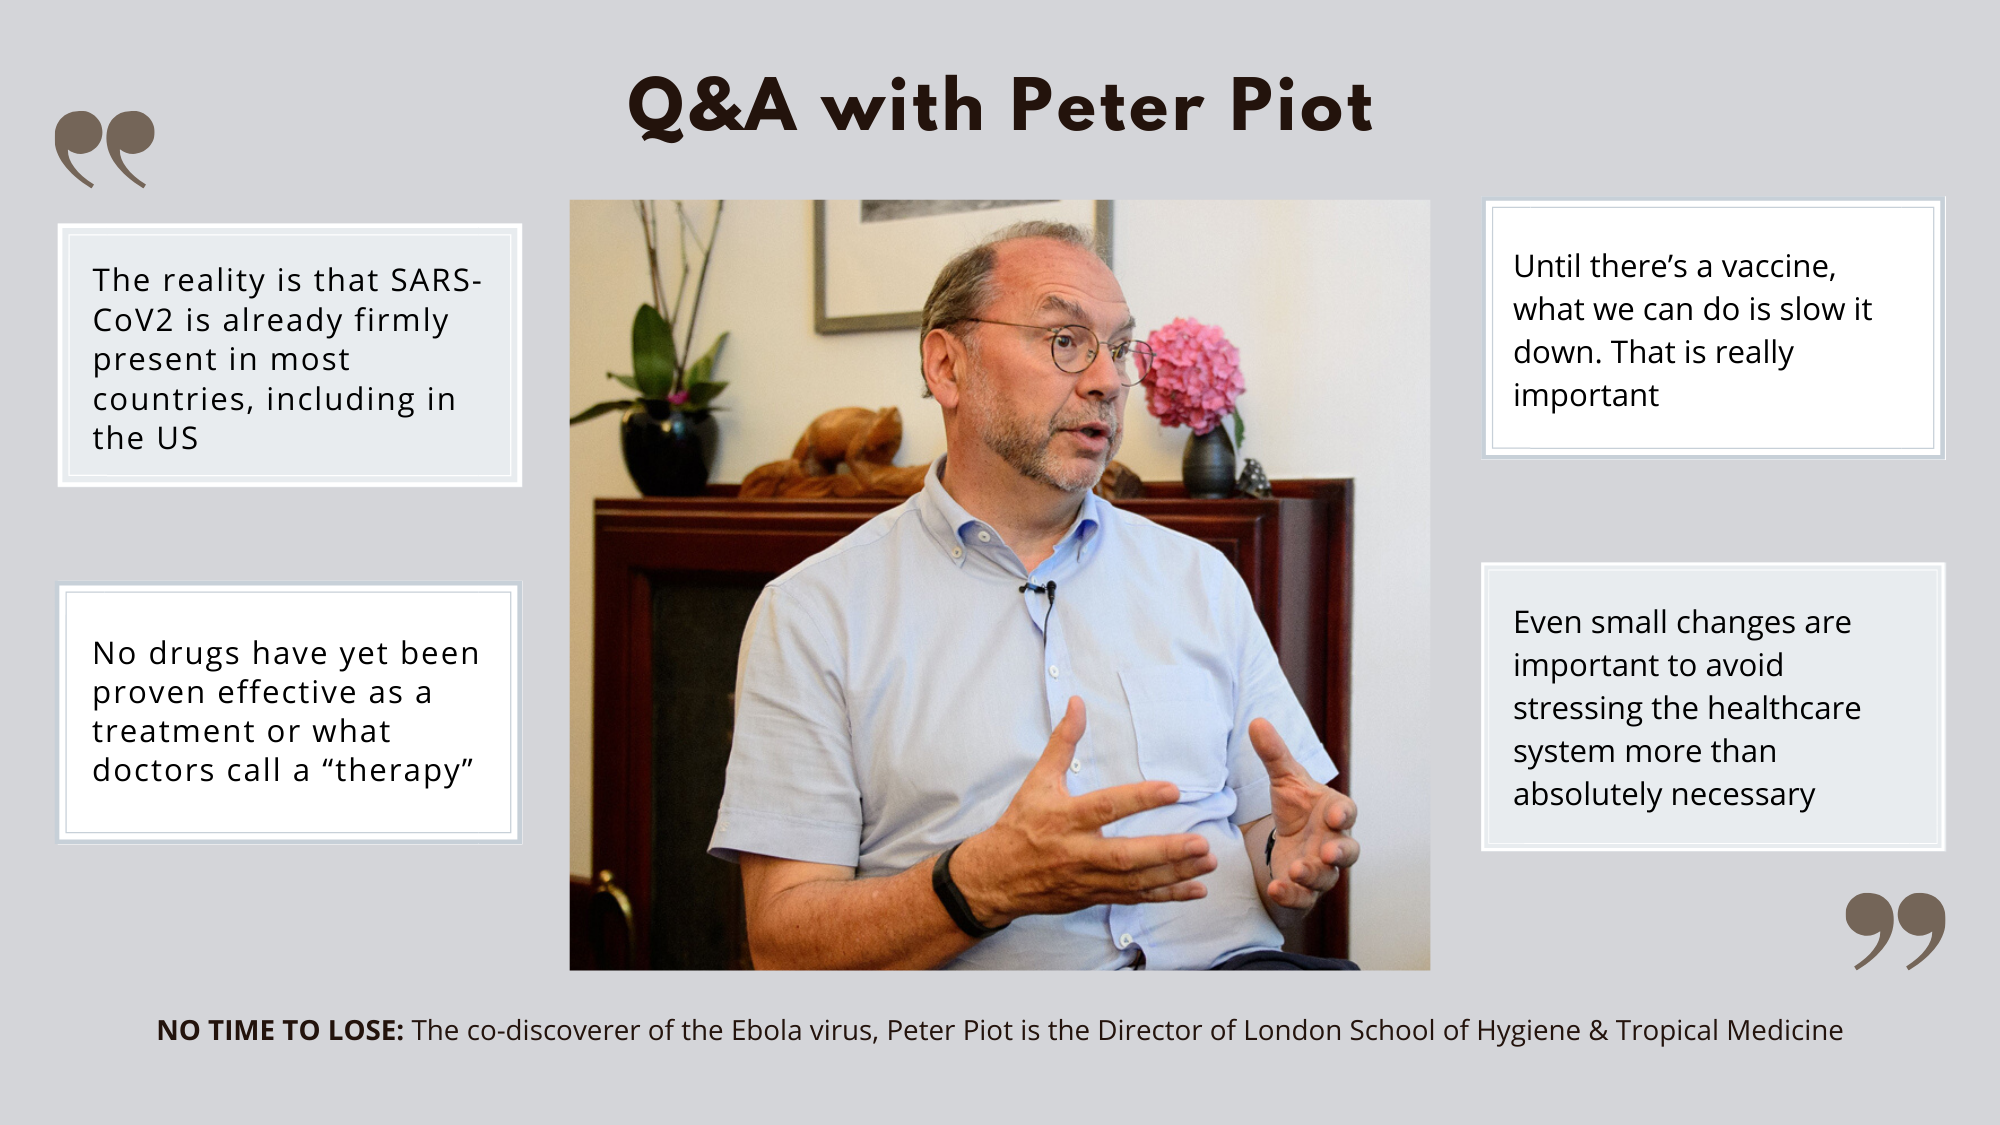 NO TIME TO LOSE: The co-discoverer of the Ebola virus, Peter Piot is the Director of London School of Hygiene & Tropical Medicine